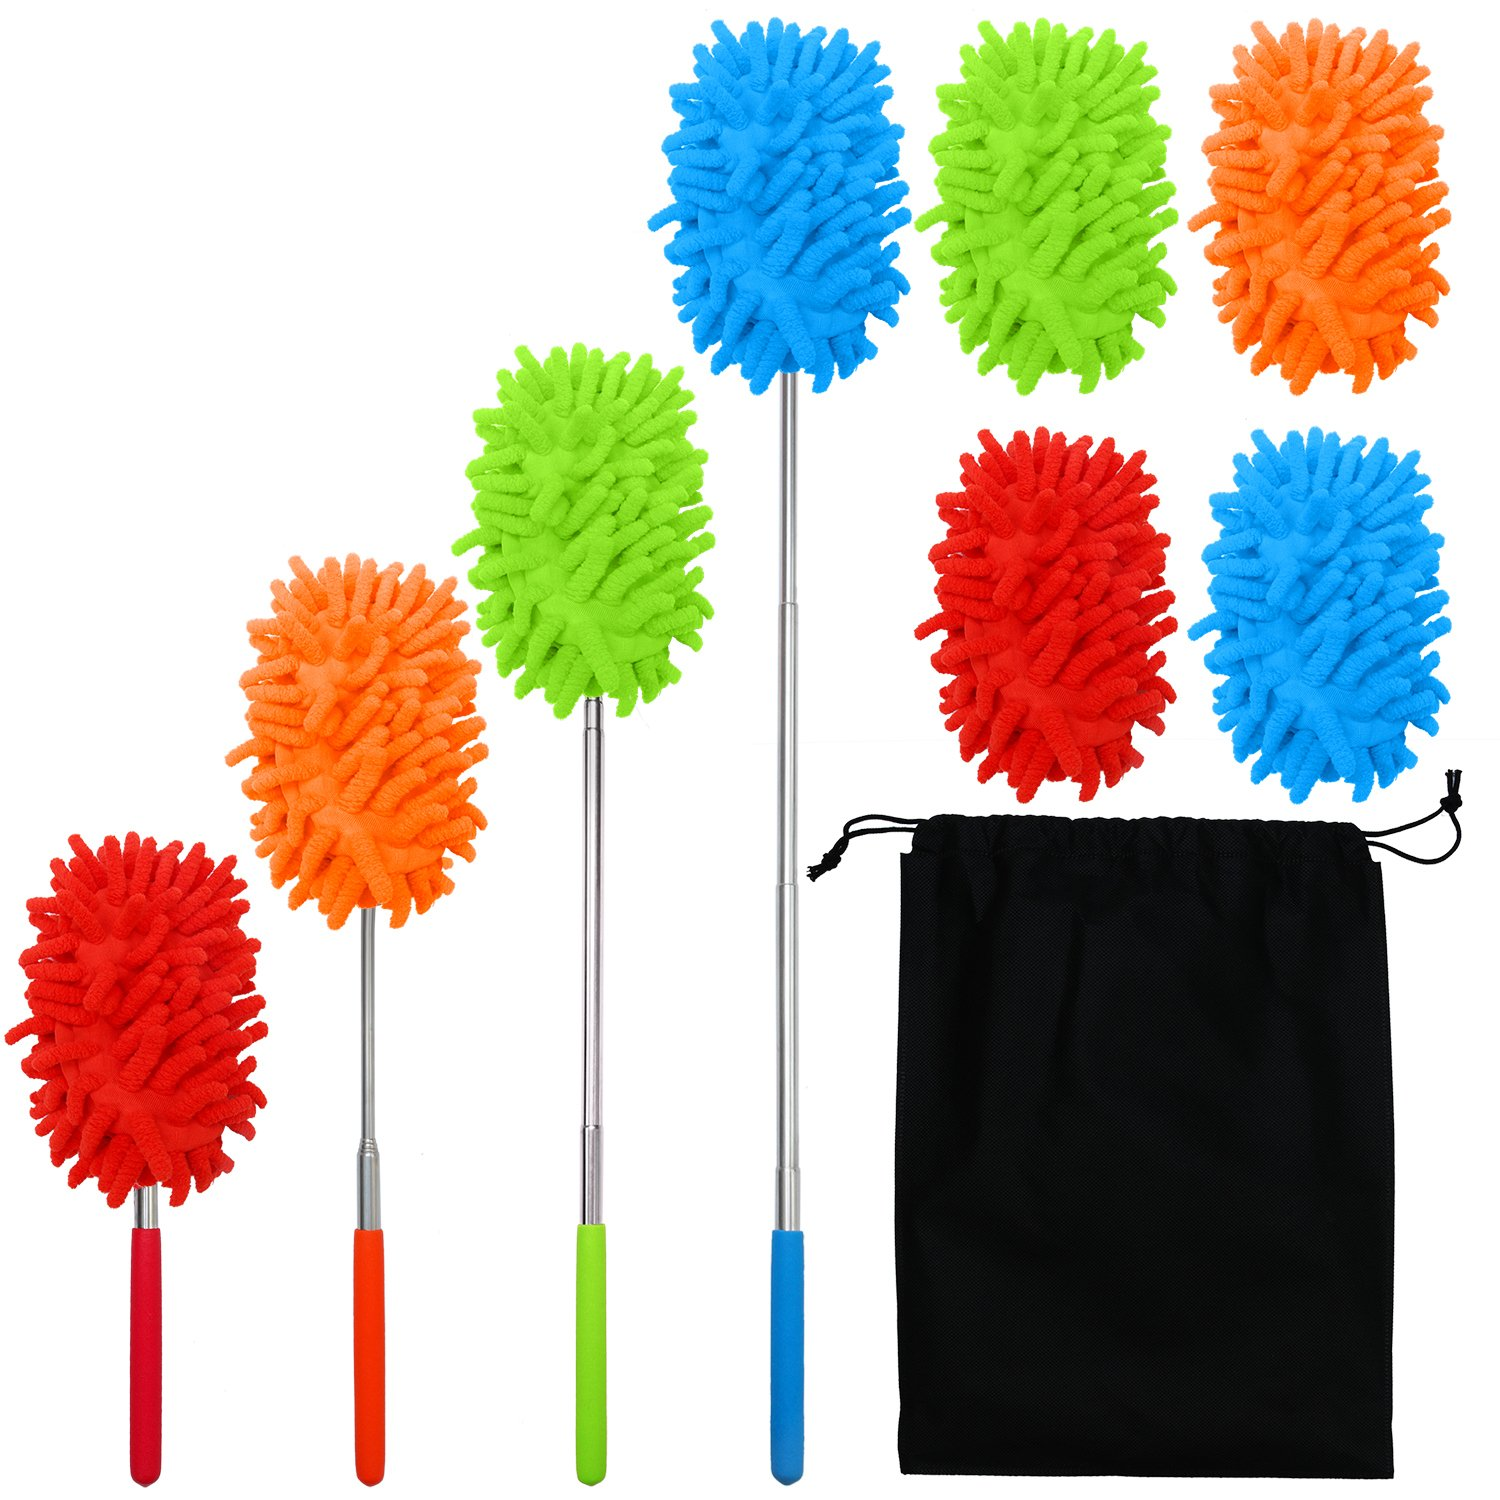 Aneco 4 Pack Extendable Microfiber Duster Dusting Brush Set With Free 4 Duster Heads with Telescoping Pole for Home, Office, Car with Storage Bag,4 Colors